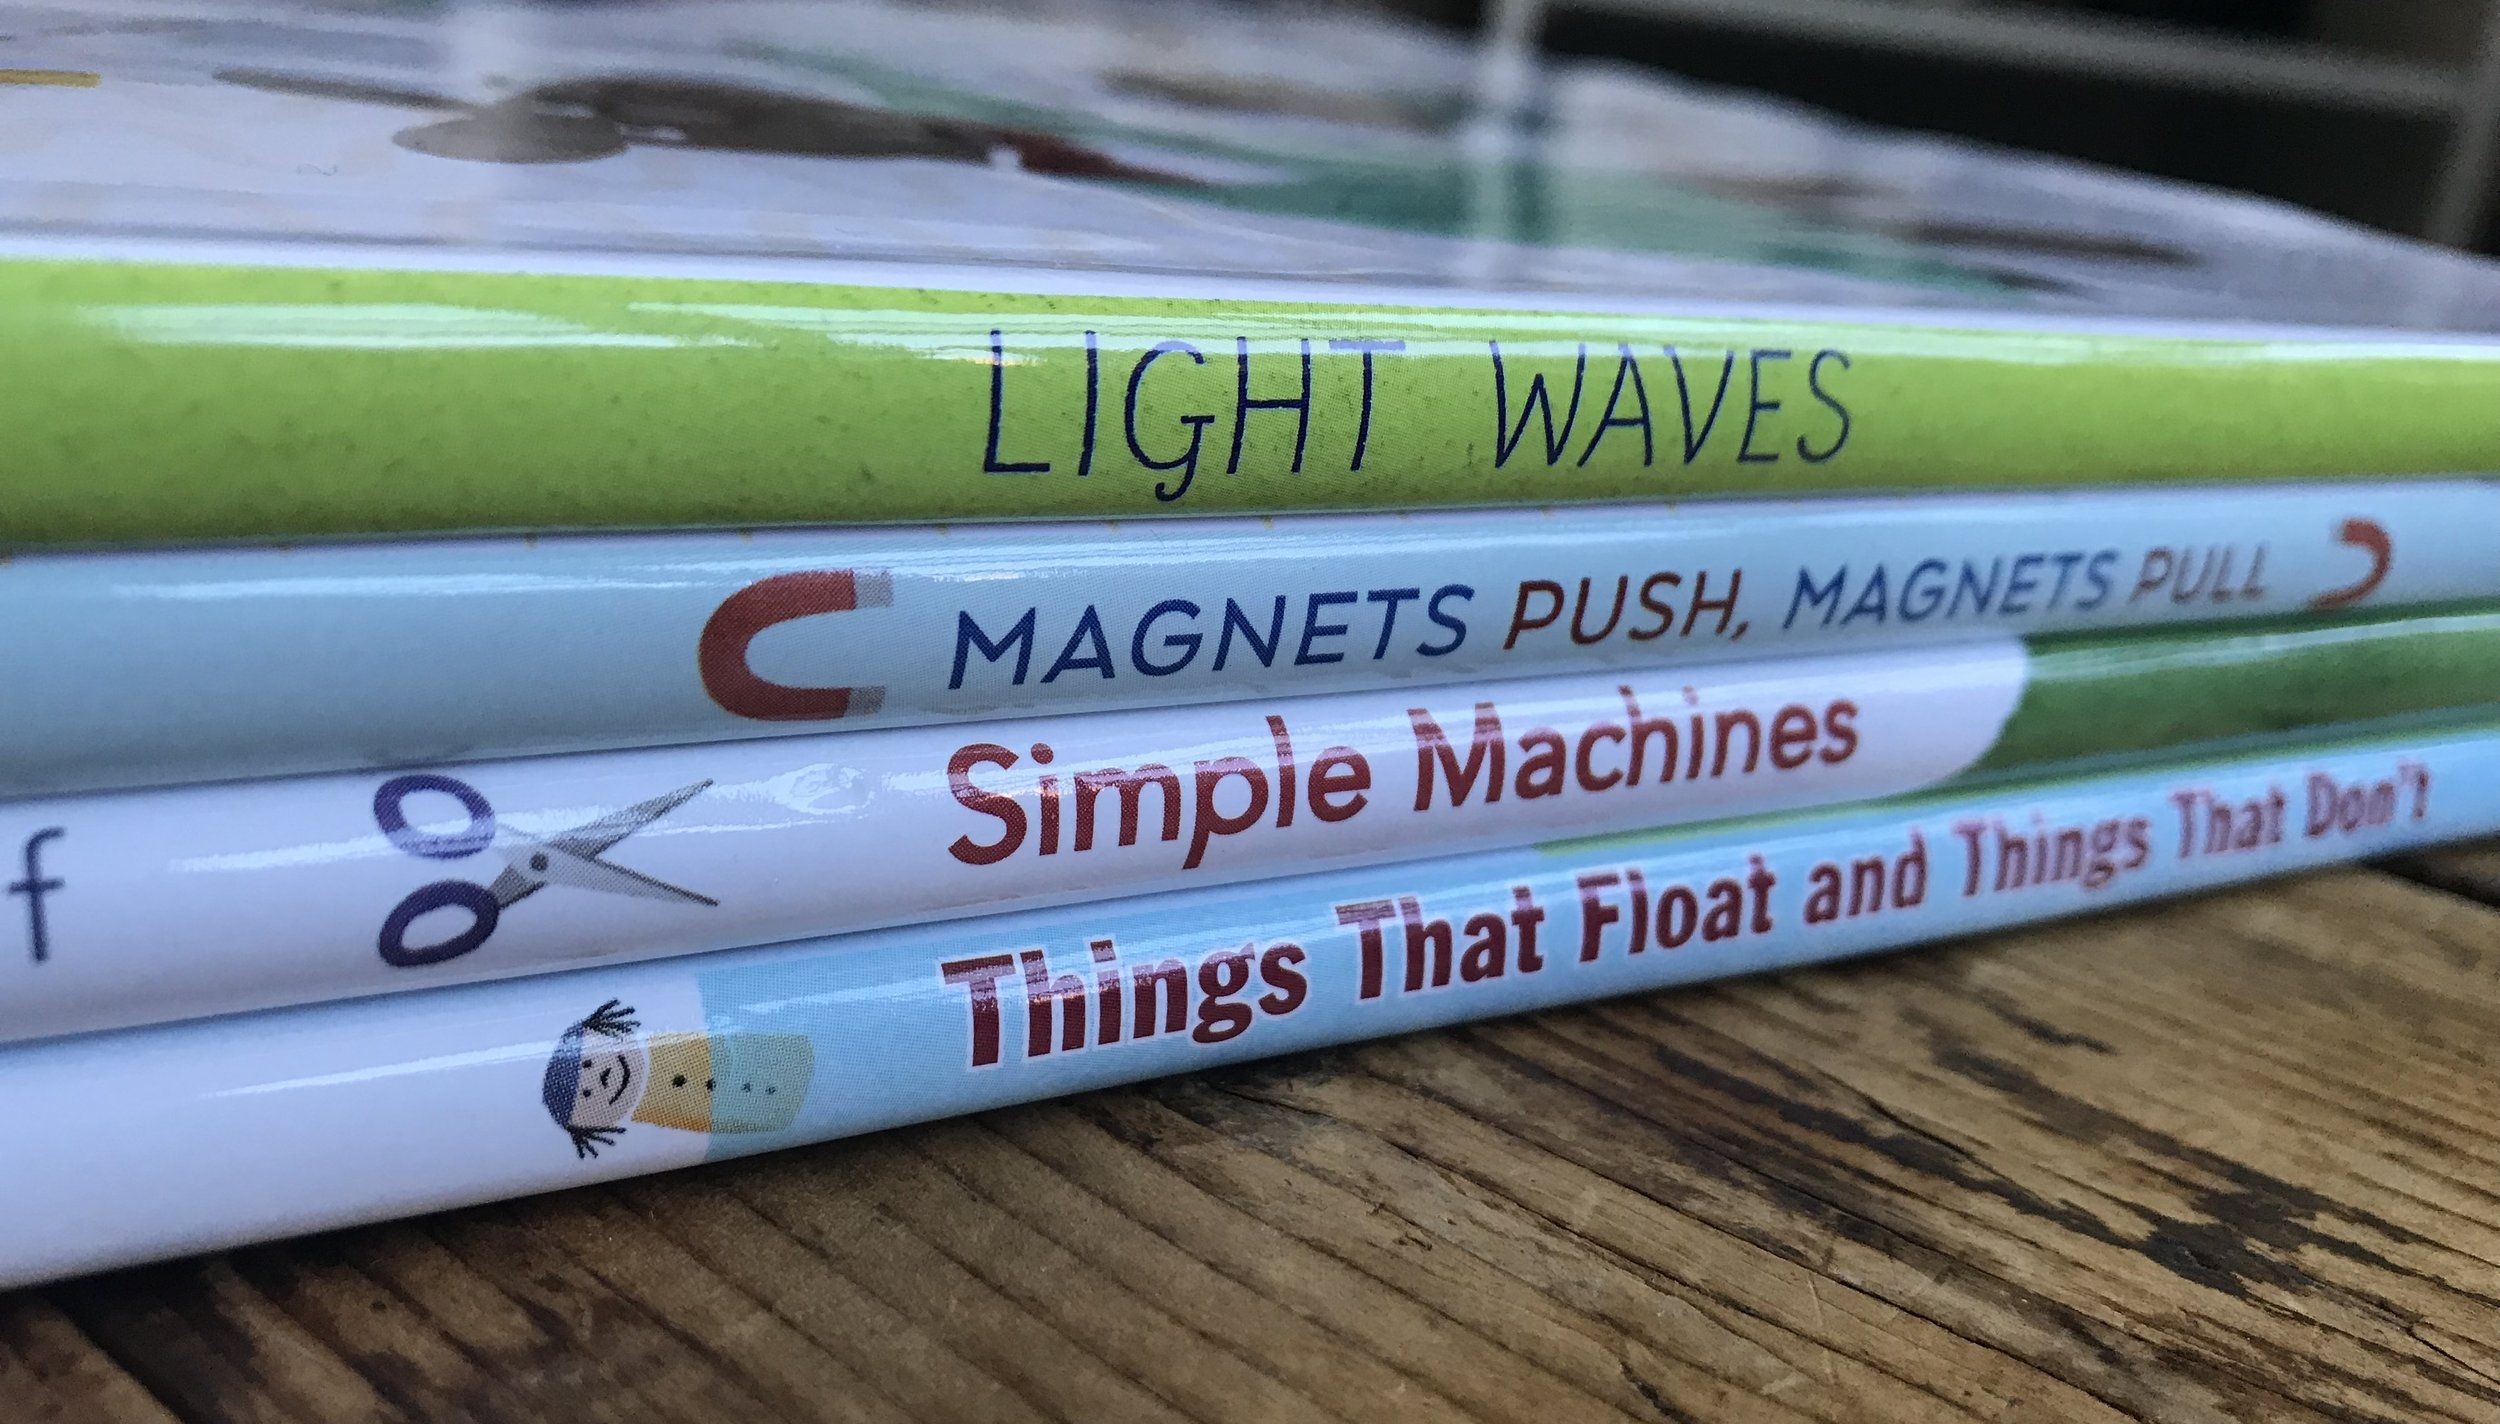 4 science book spines